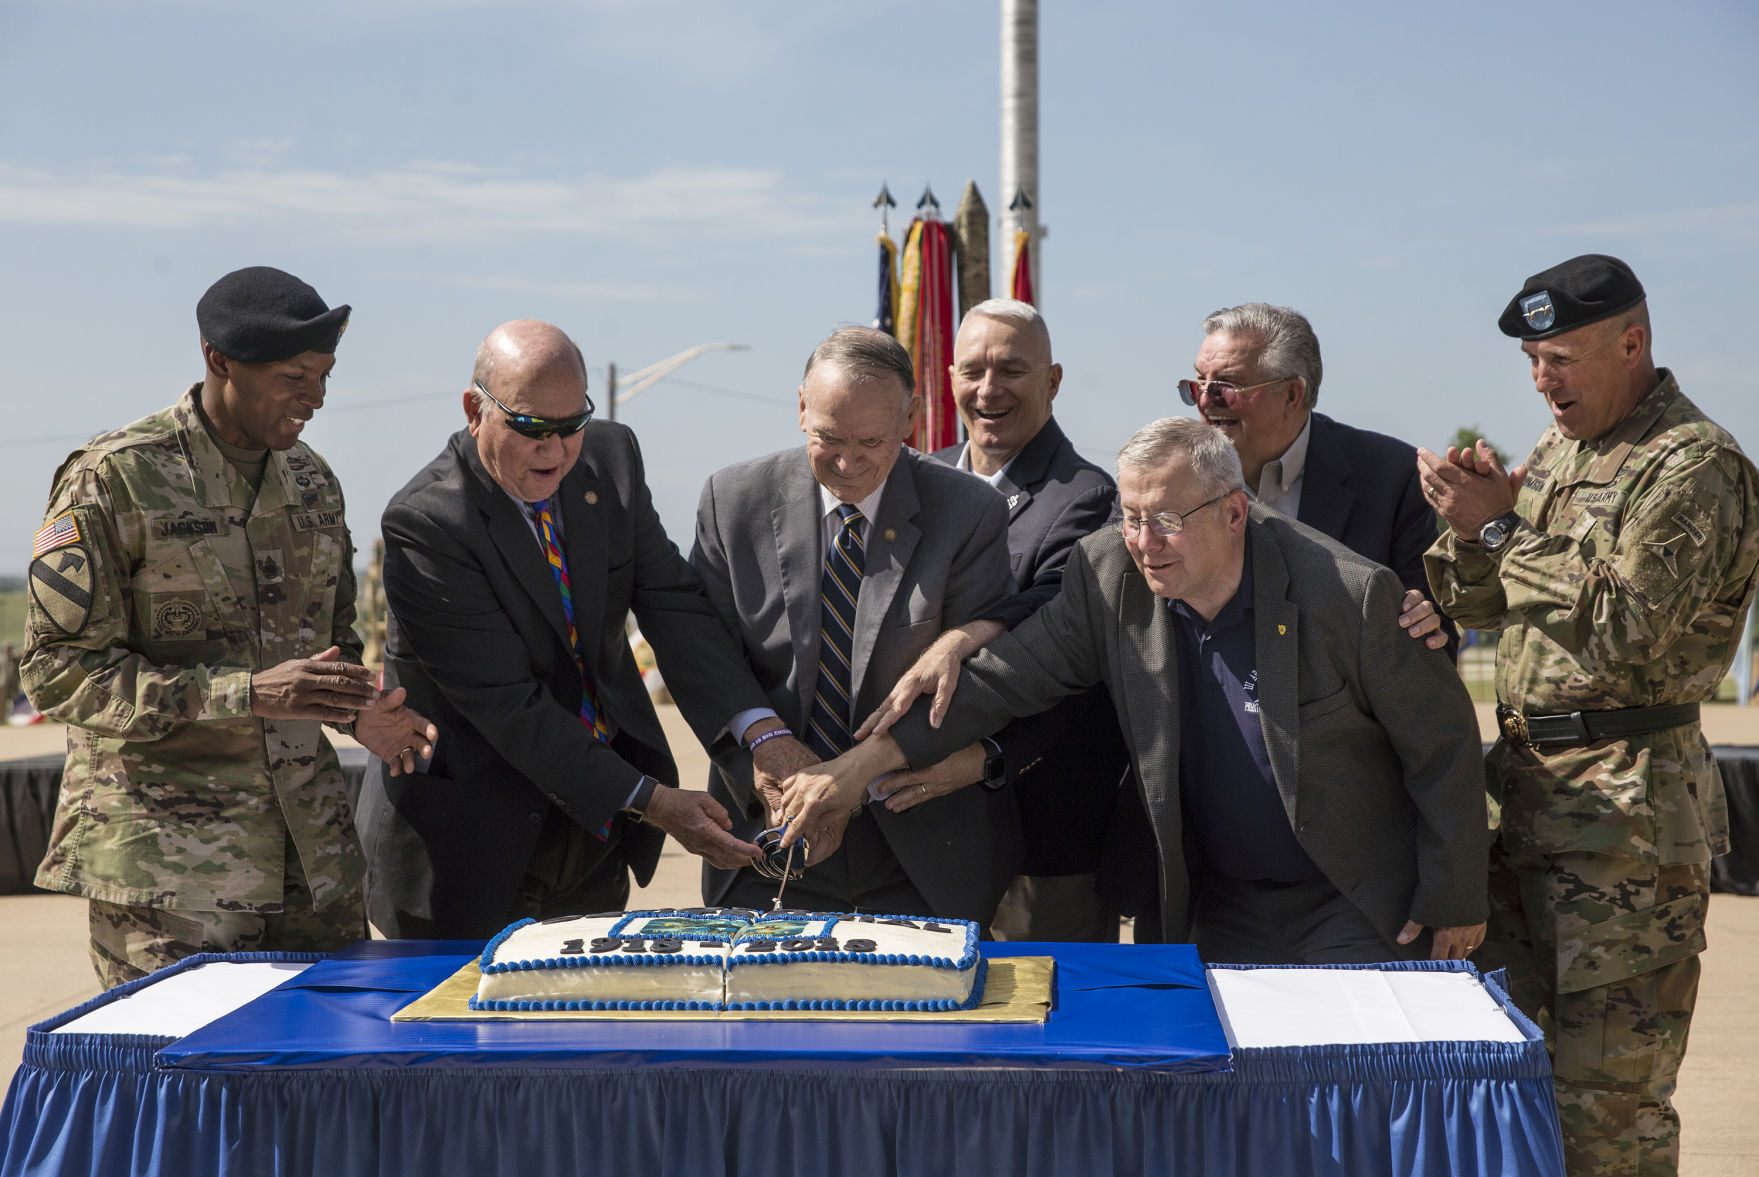 Army Birthday III Corps celebrates 100th anniversary